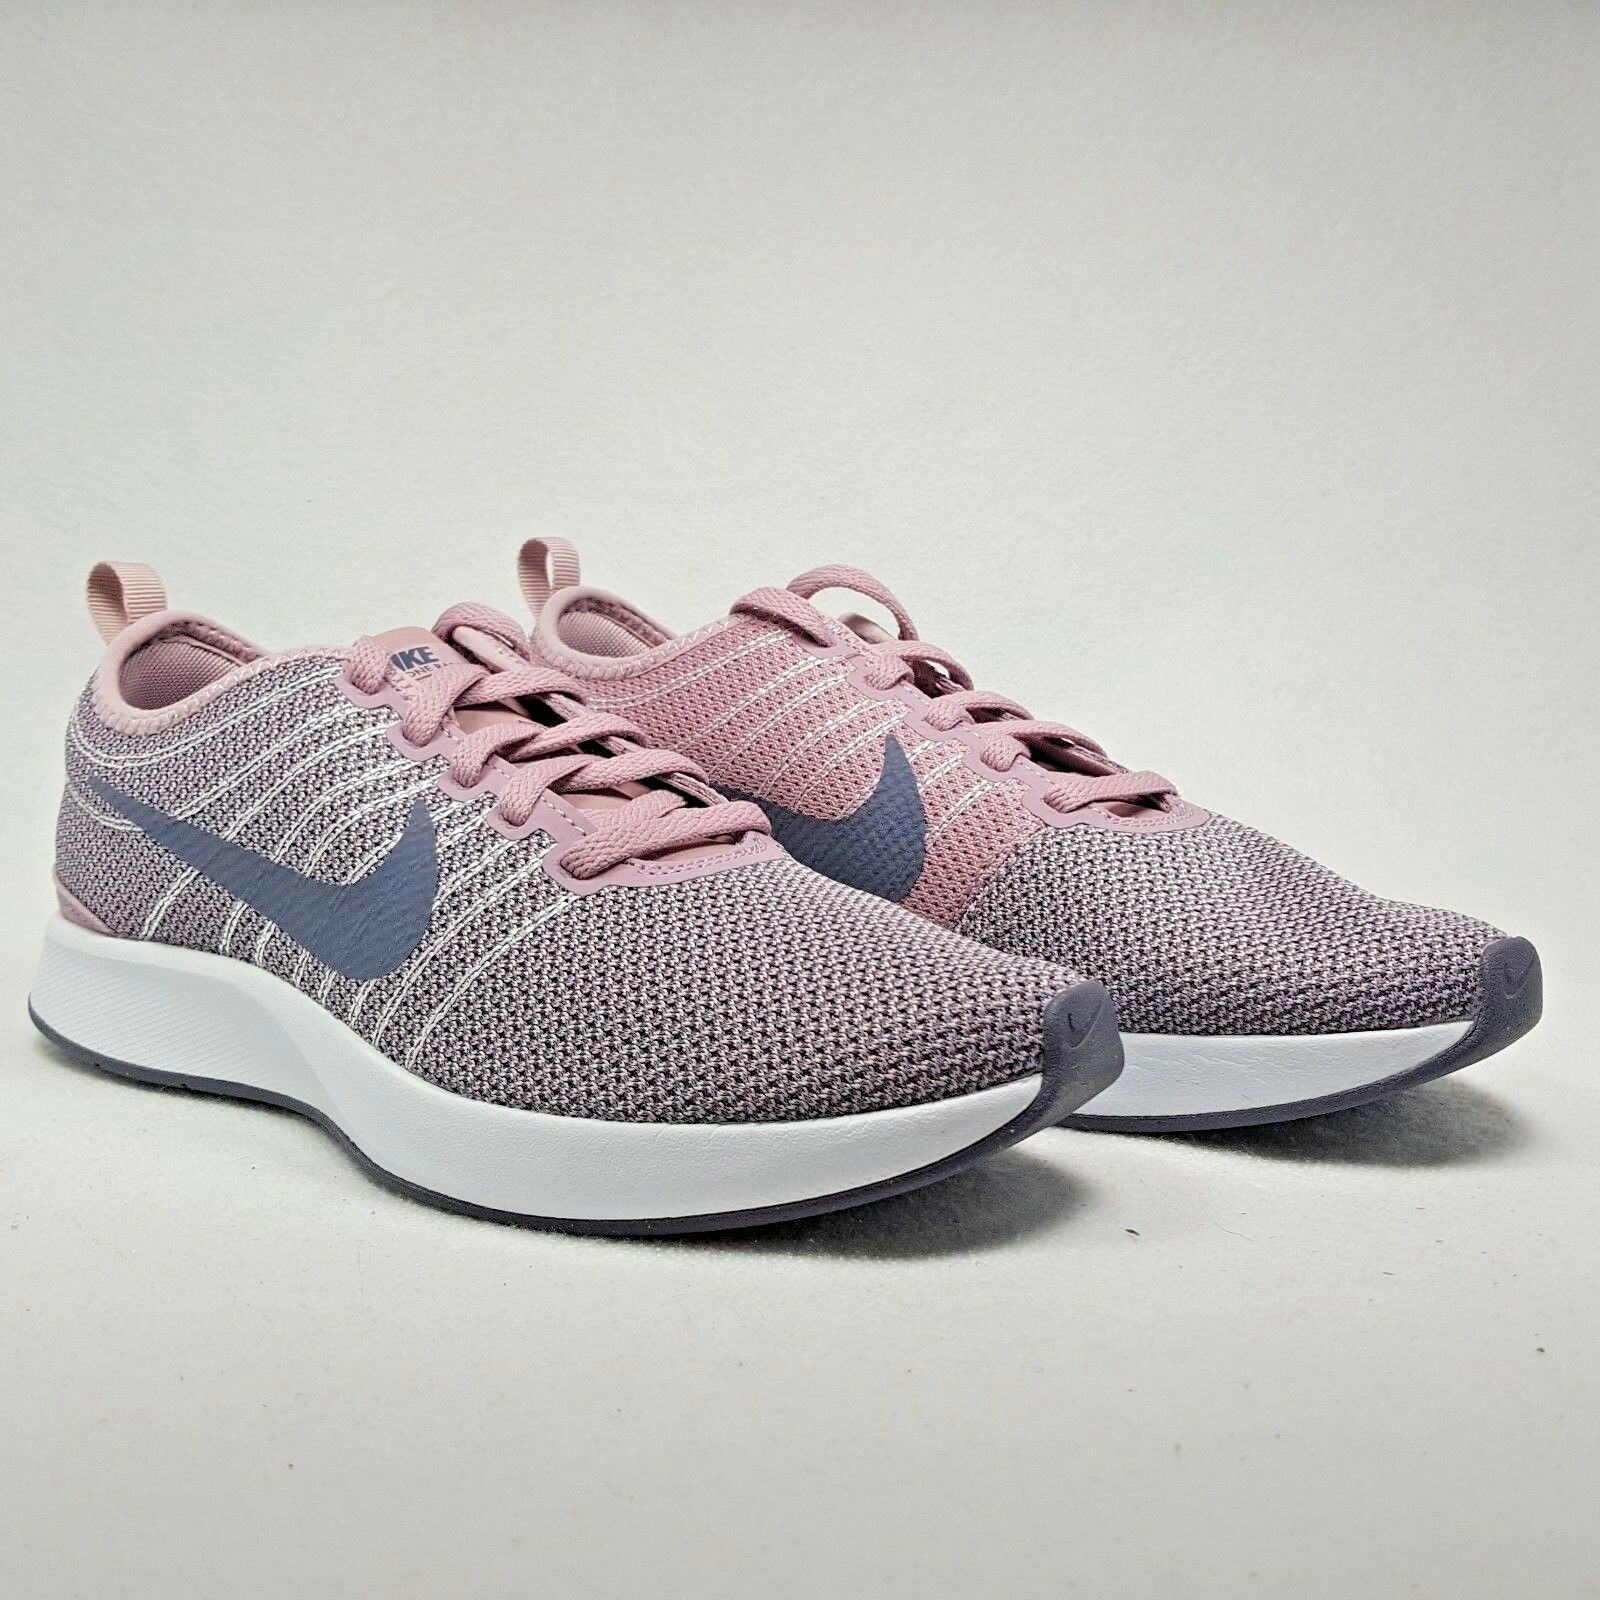 Nike Dualtone Racer Elemental Rose Light Carbon Rose Running Chaussures Femme Sz 7.5